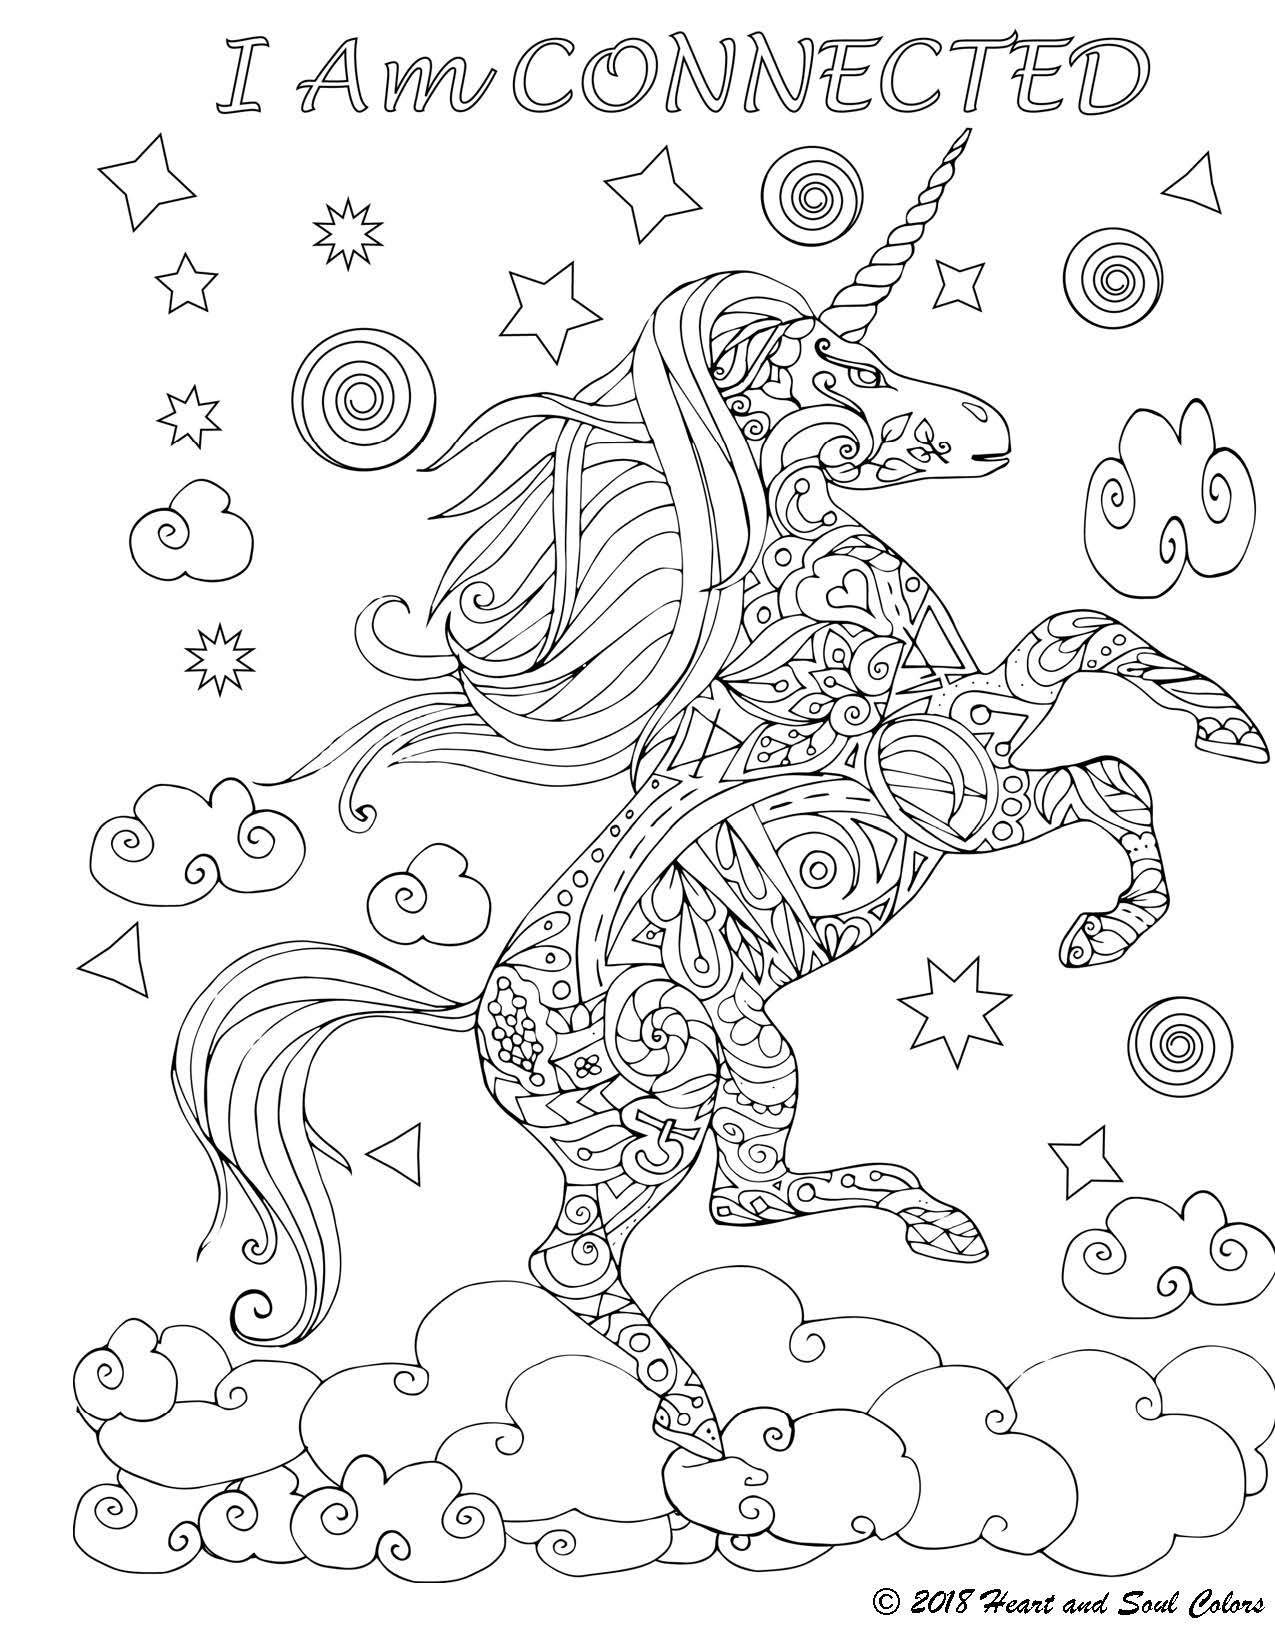 Tap into the buffalo for purpose, the unicorn for connection to universal energy, the dragon for power, the elephant for focus, the eagle for inspiration, the crane for abundance, the hawk for intuition, and the badger for determination.  As you color in your special PURPOSE kit of animals, visualize every stroke and choice as a root connecting you to Mother Earth and white light and source energy.